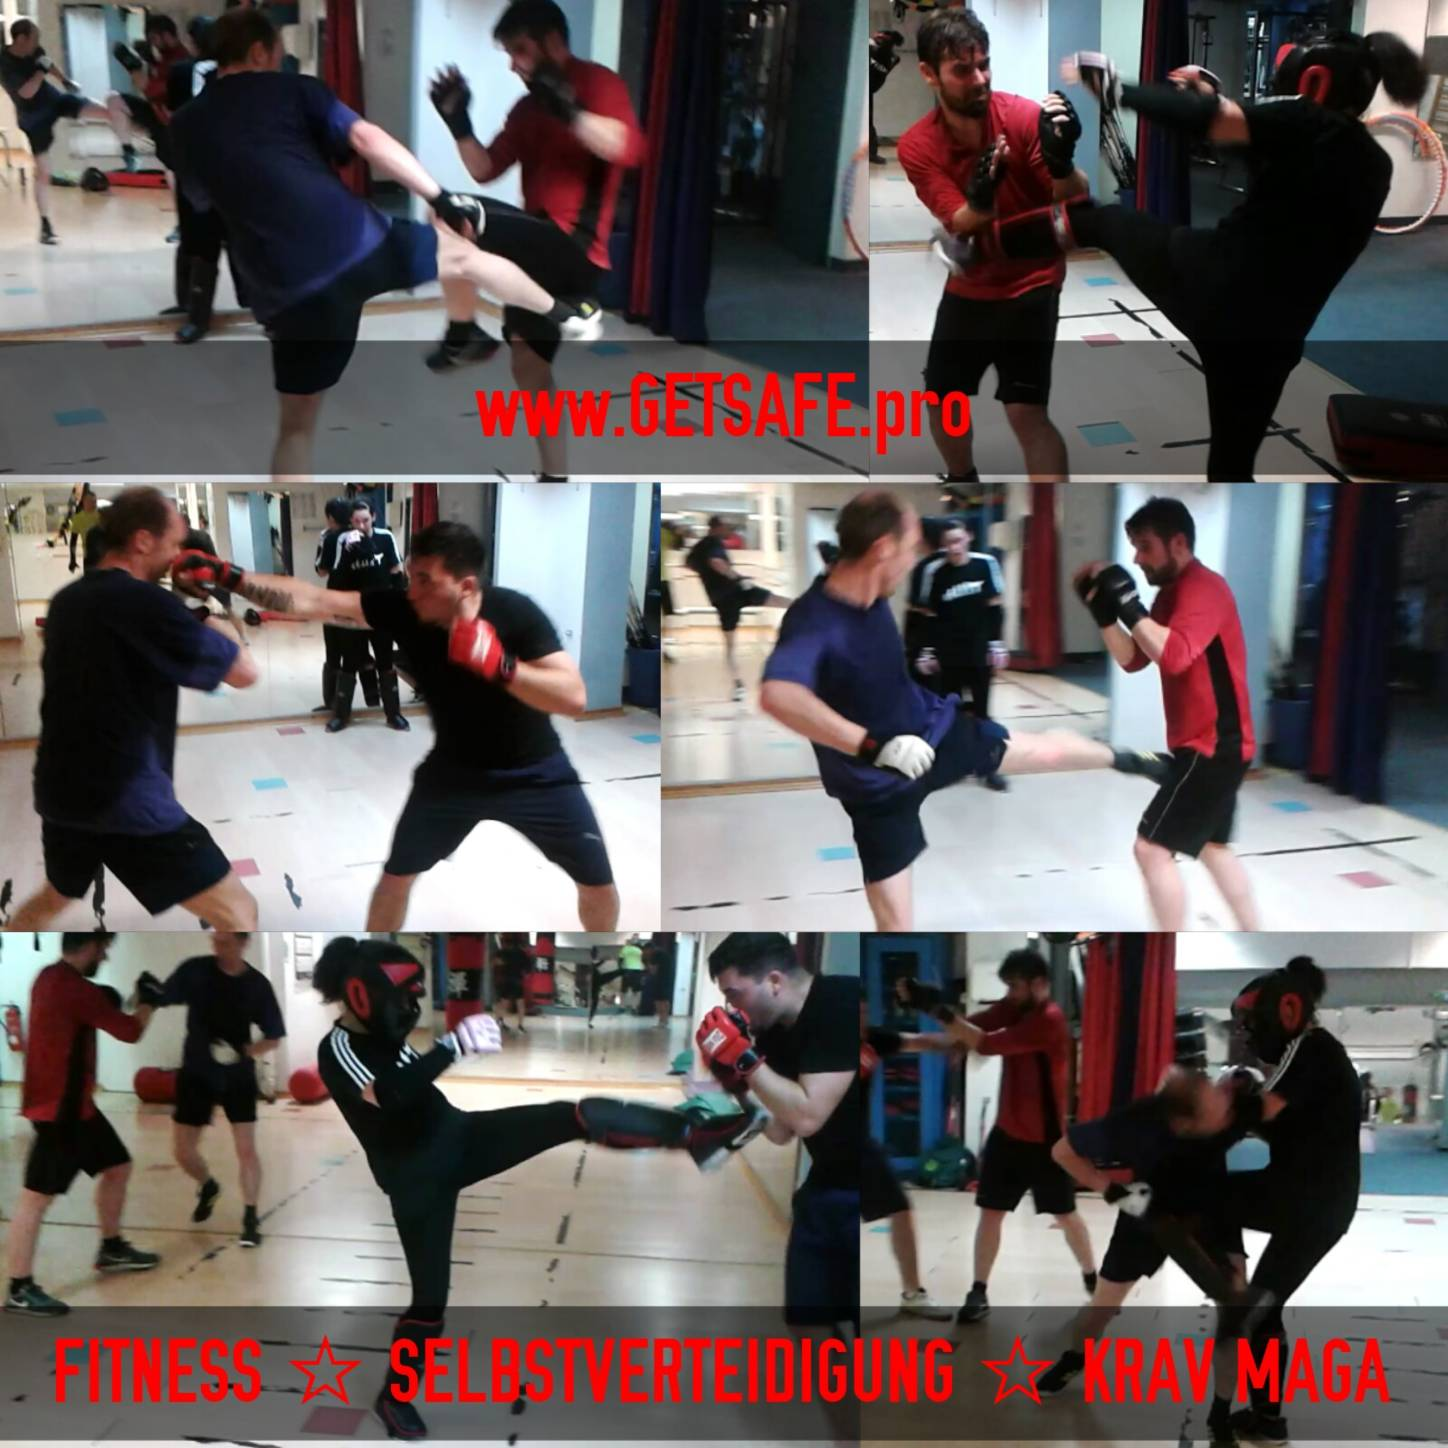 GETSAFEpro Krav Maga Training Mainz Selbstverteidigung Fitness-Center Mainz City (2)